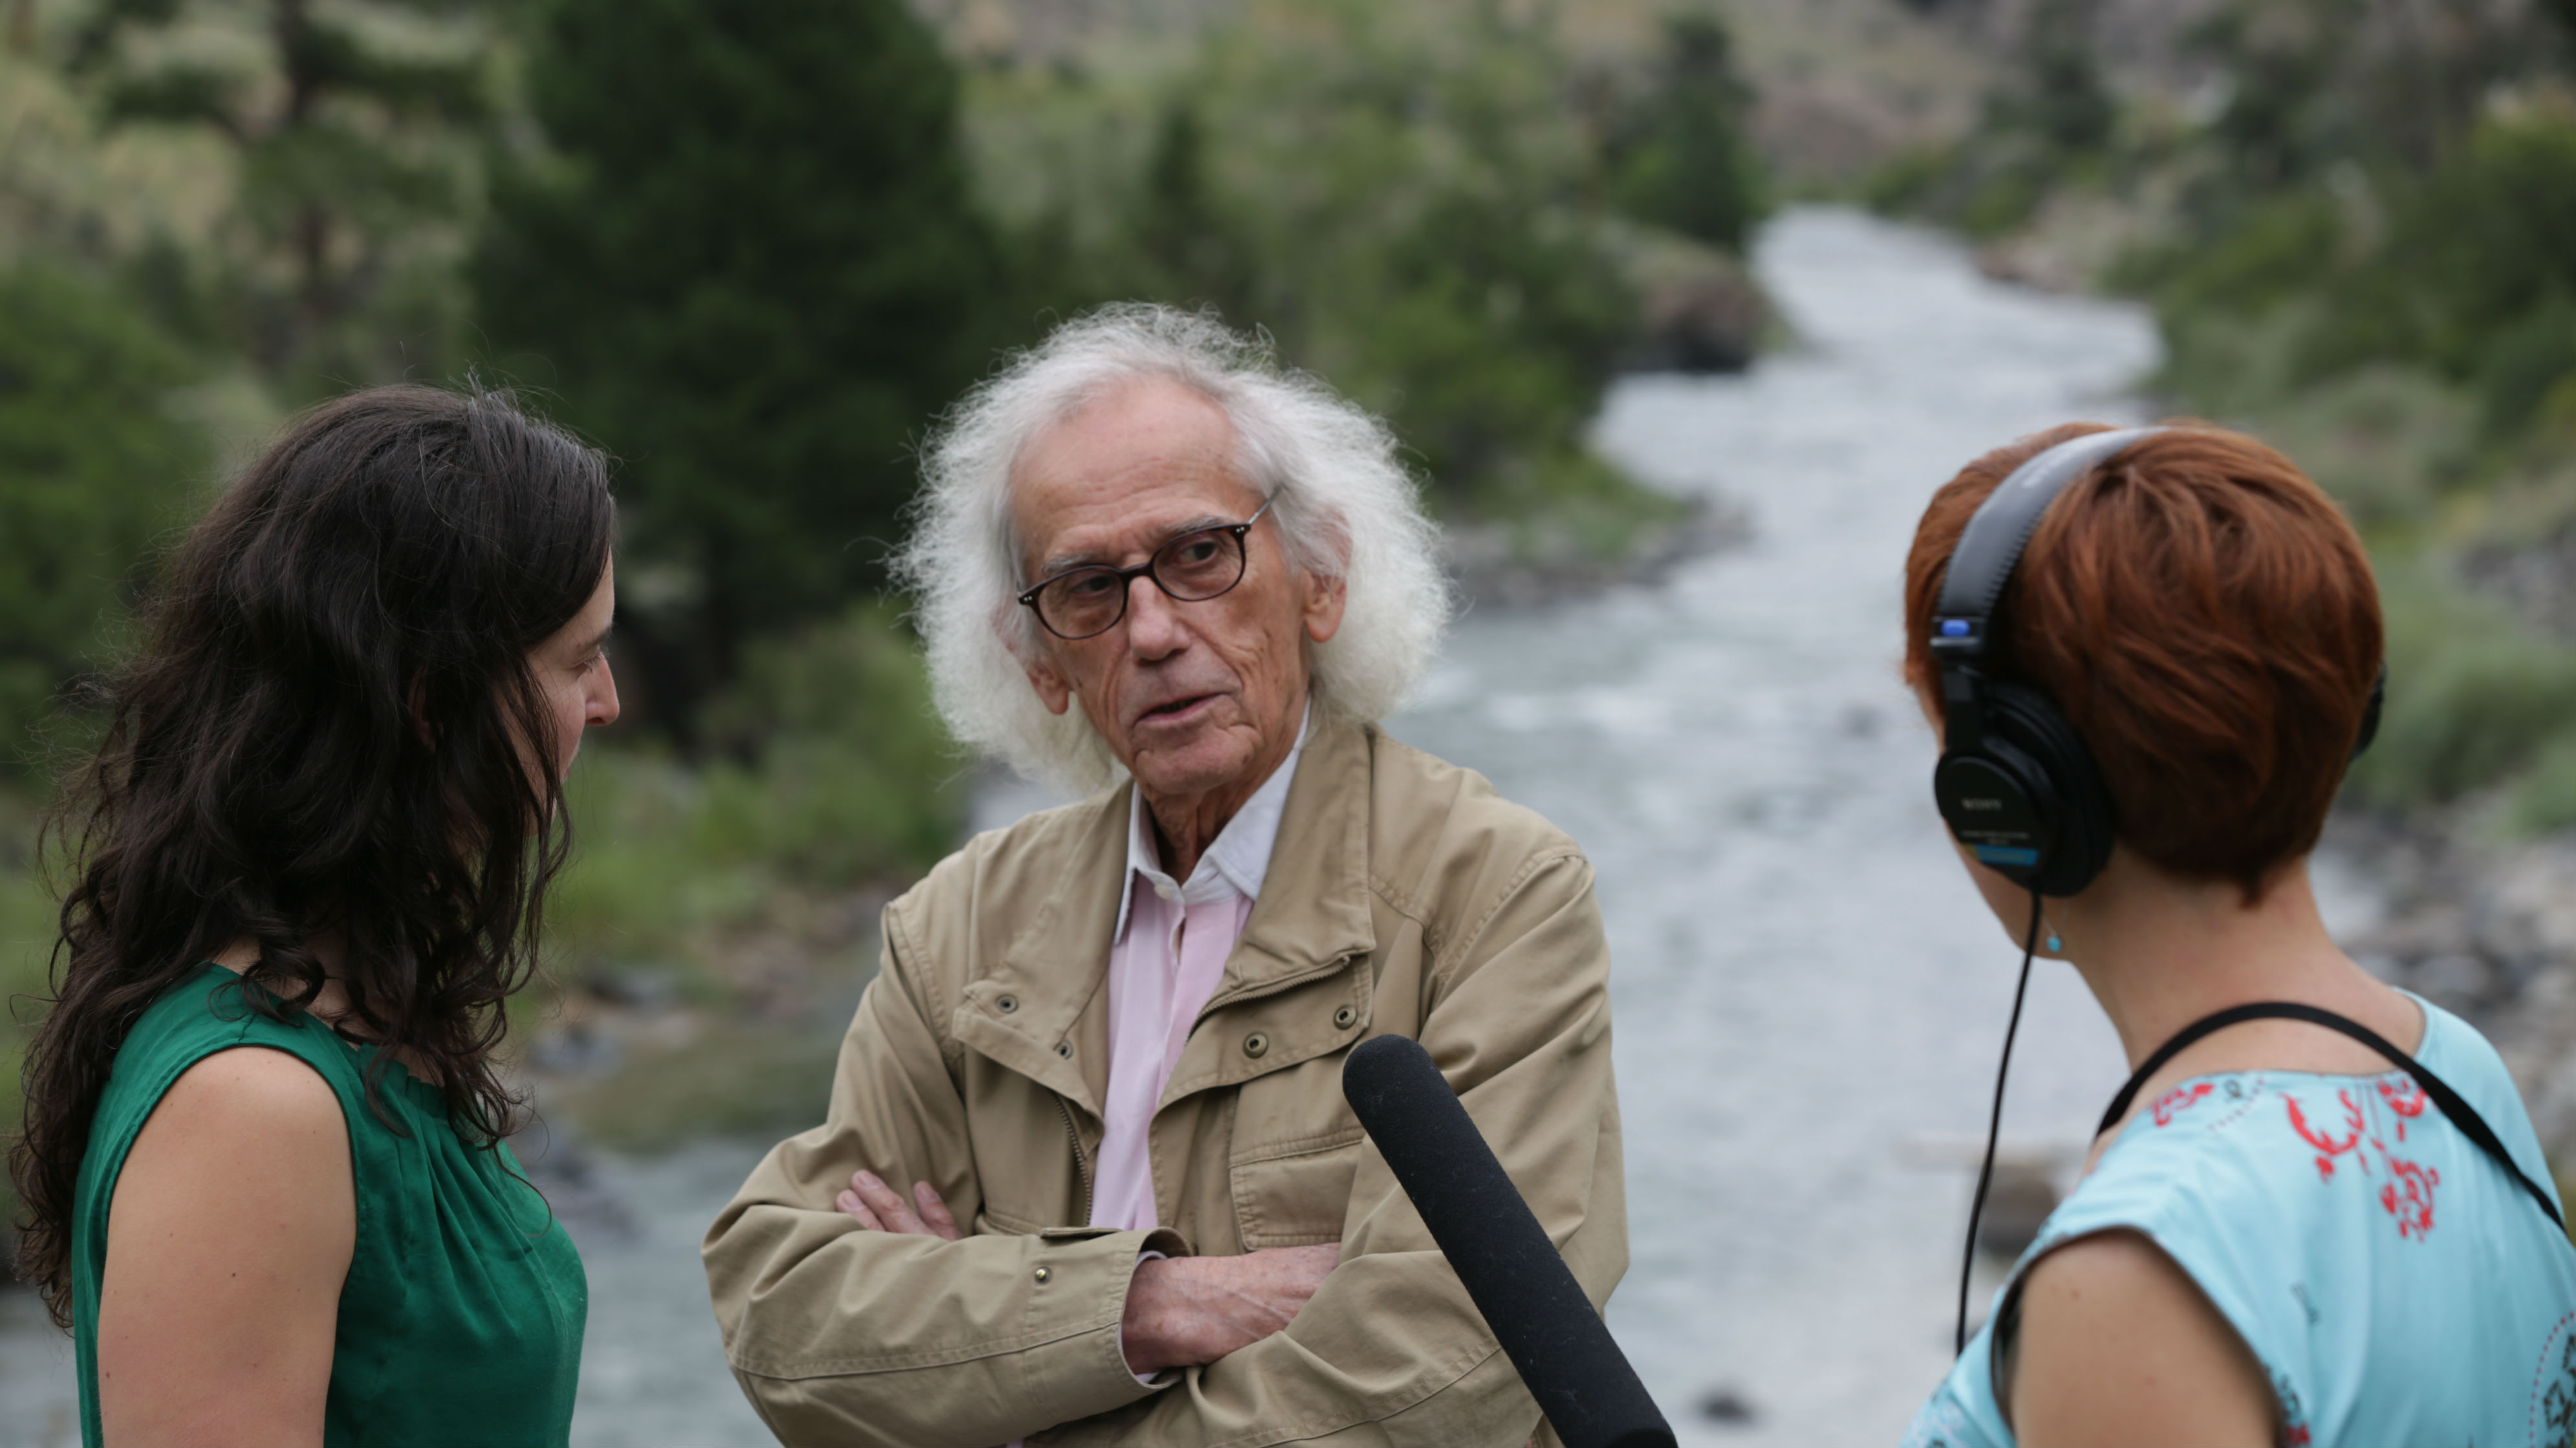 <p>CPR arts editor Chloe Veltman and news director Sadie Babits interview world-famous artist Christo by the Arkansas River in Salida.</p>